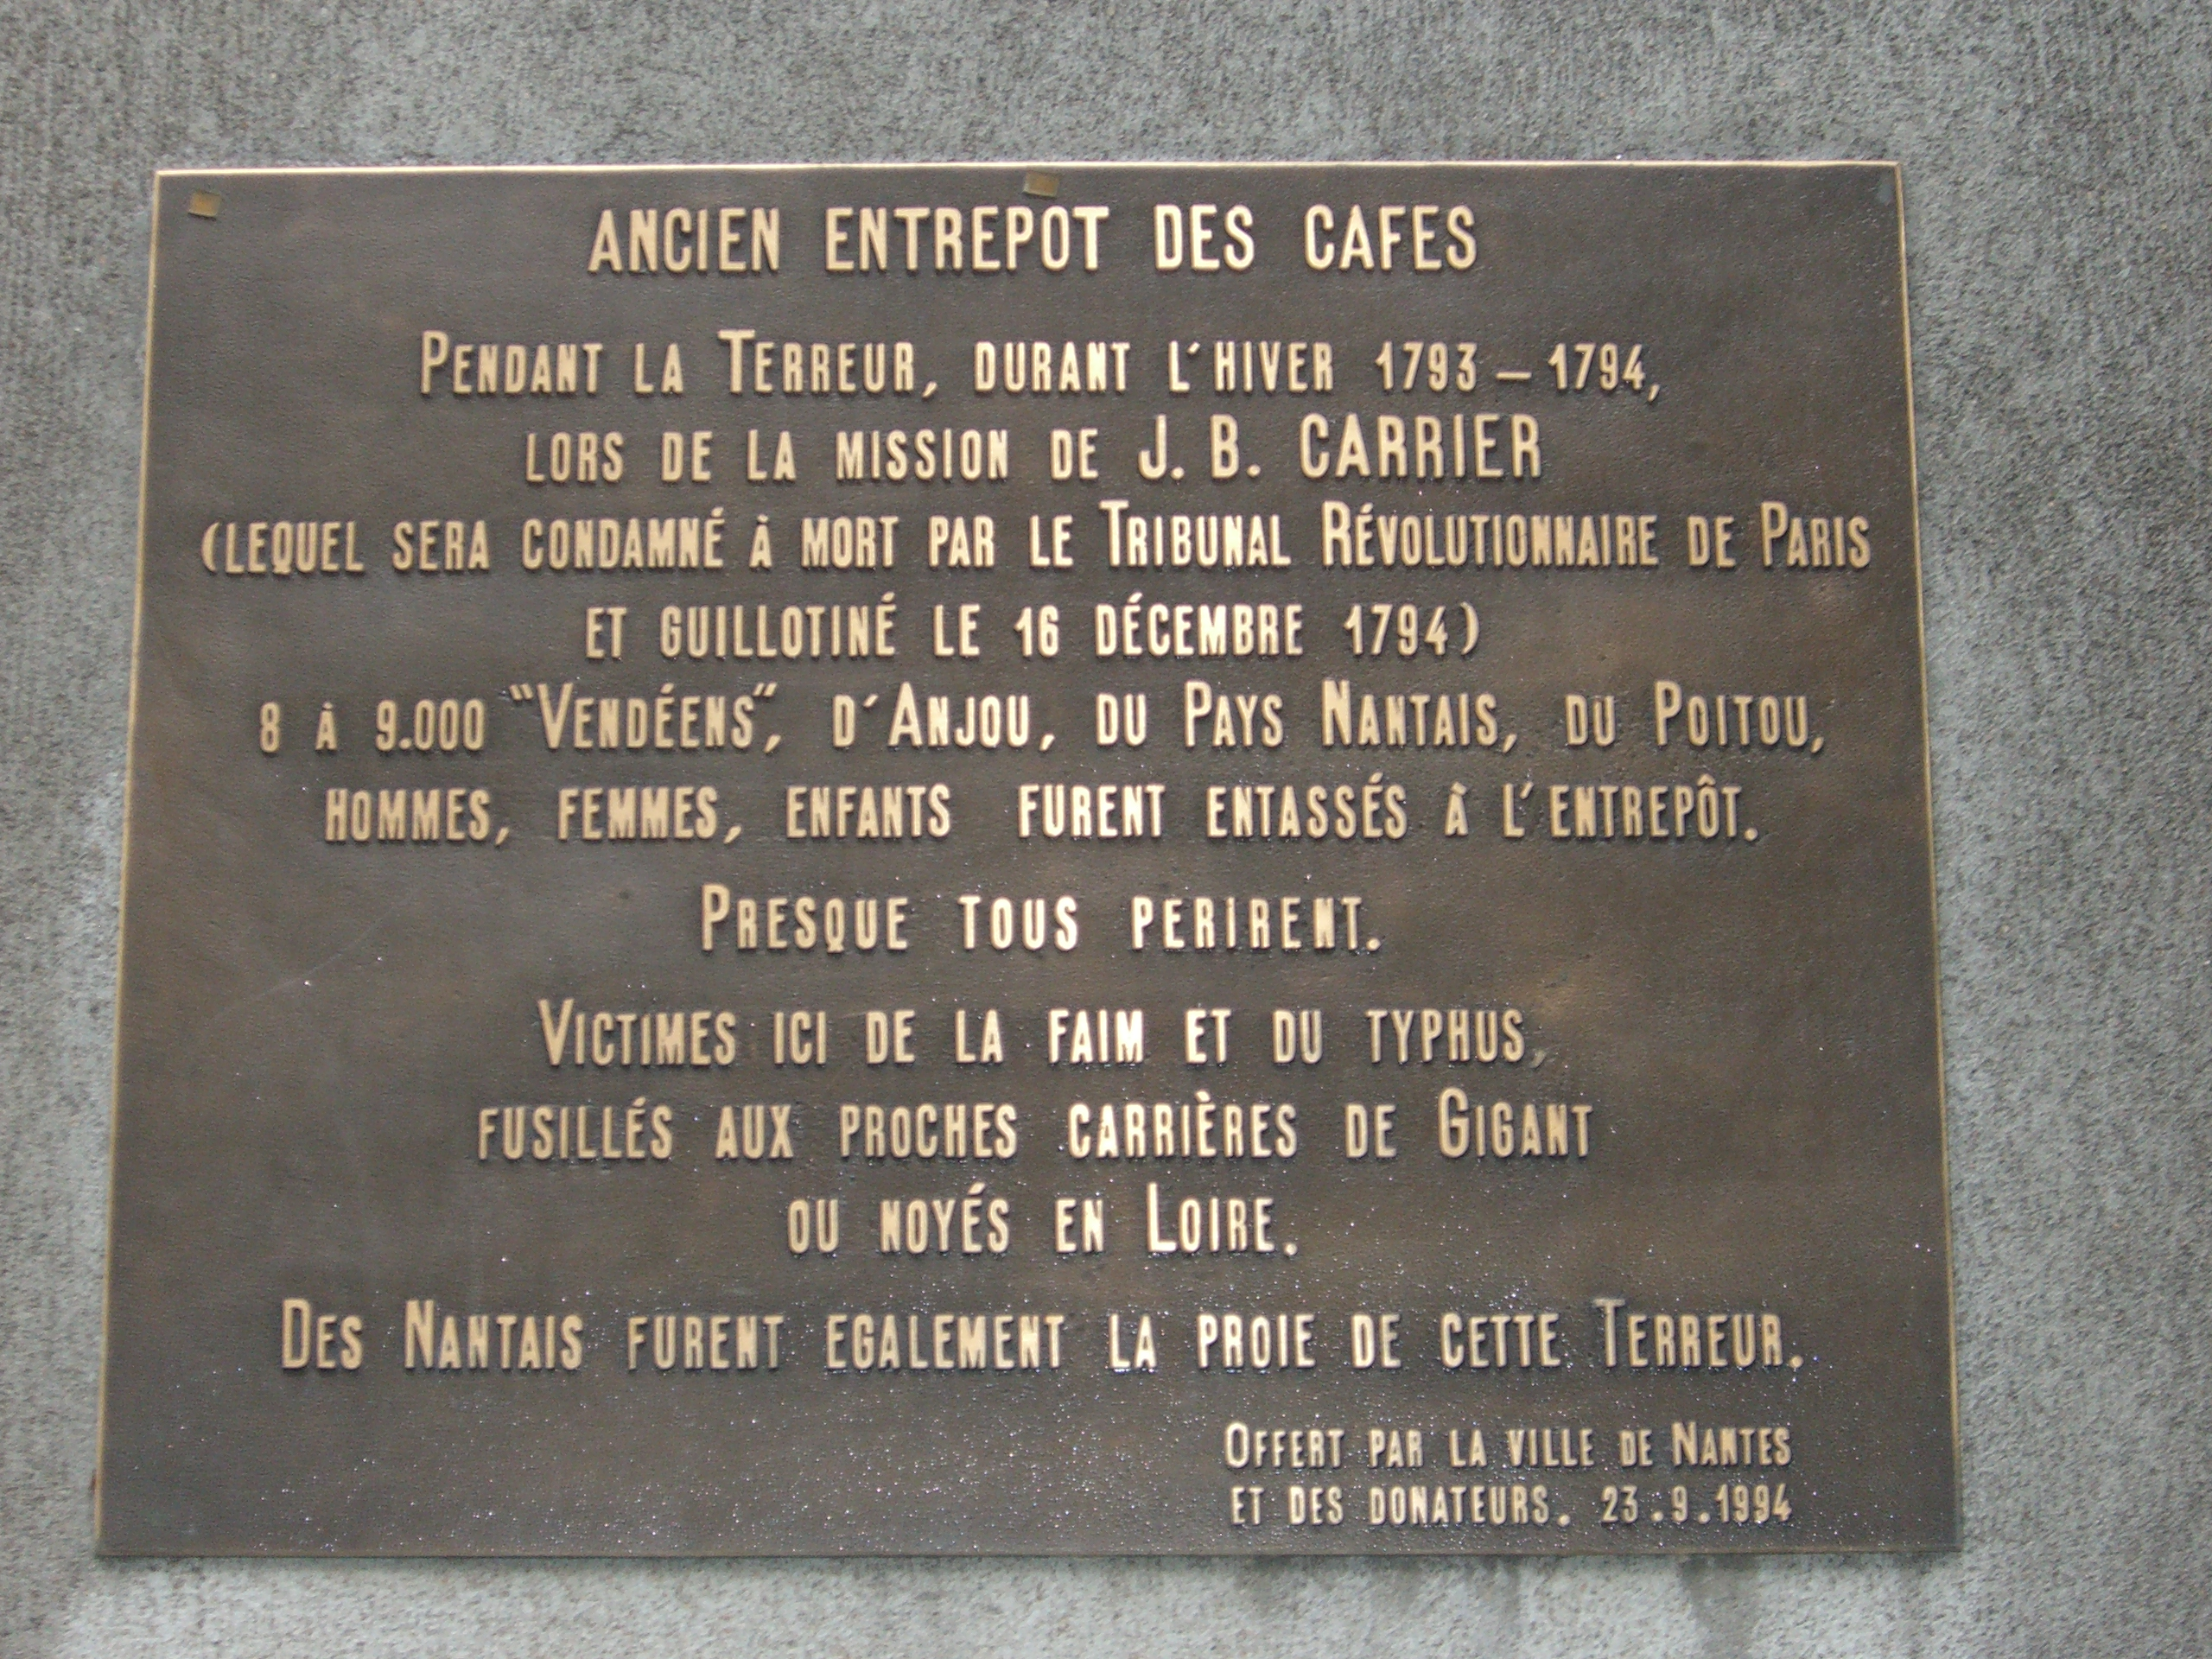 Drowning in Nantes: how one person organized the execution of more than 4,000 men, women and children